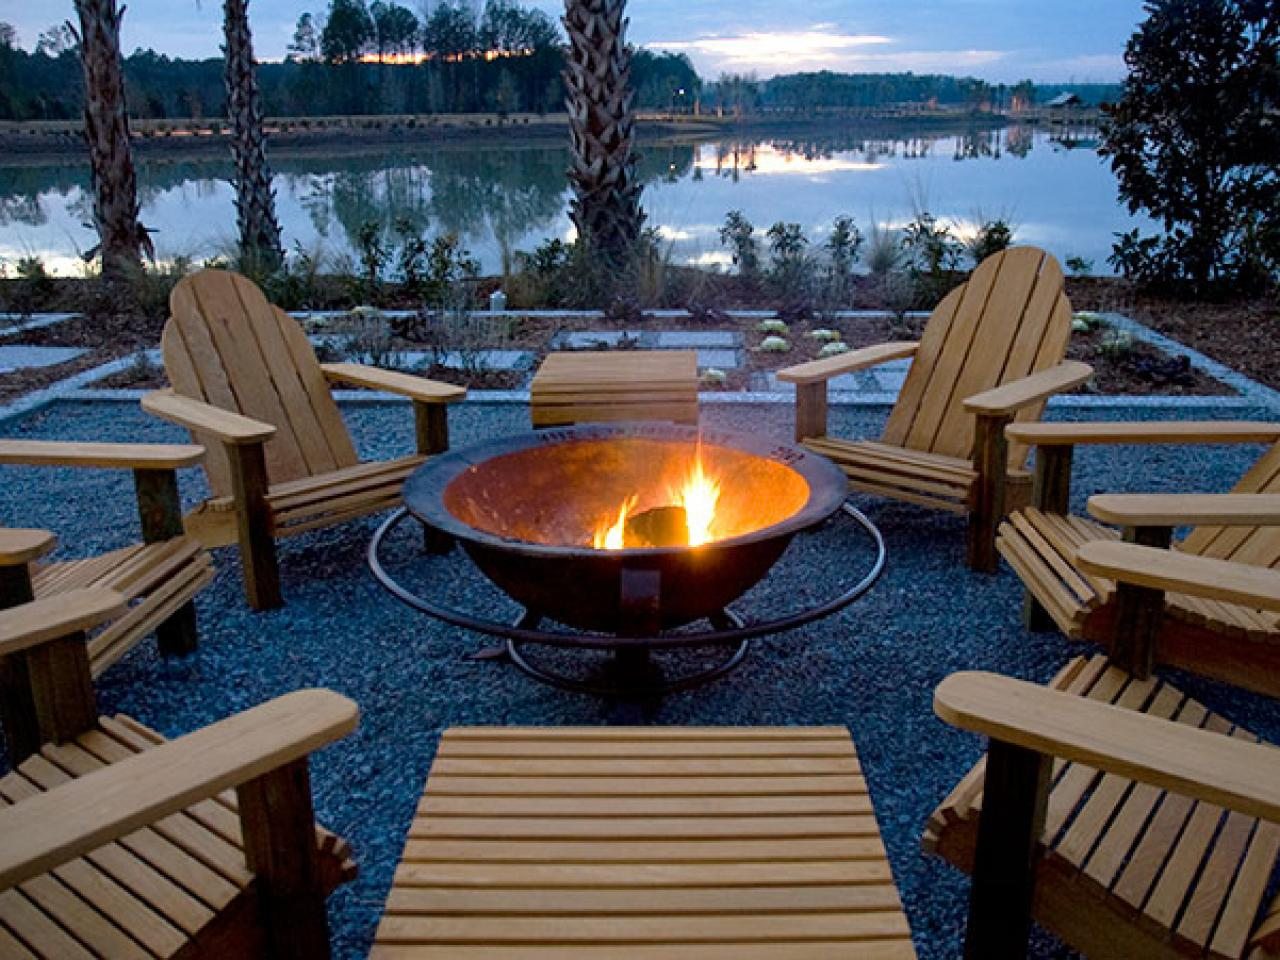 33-burning-bowl-of-fire-outdoor-fireplace-homebnc